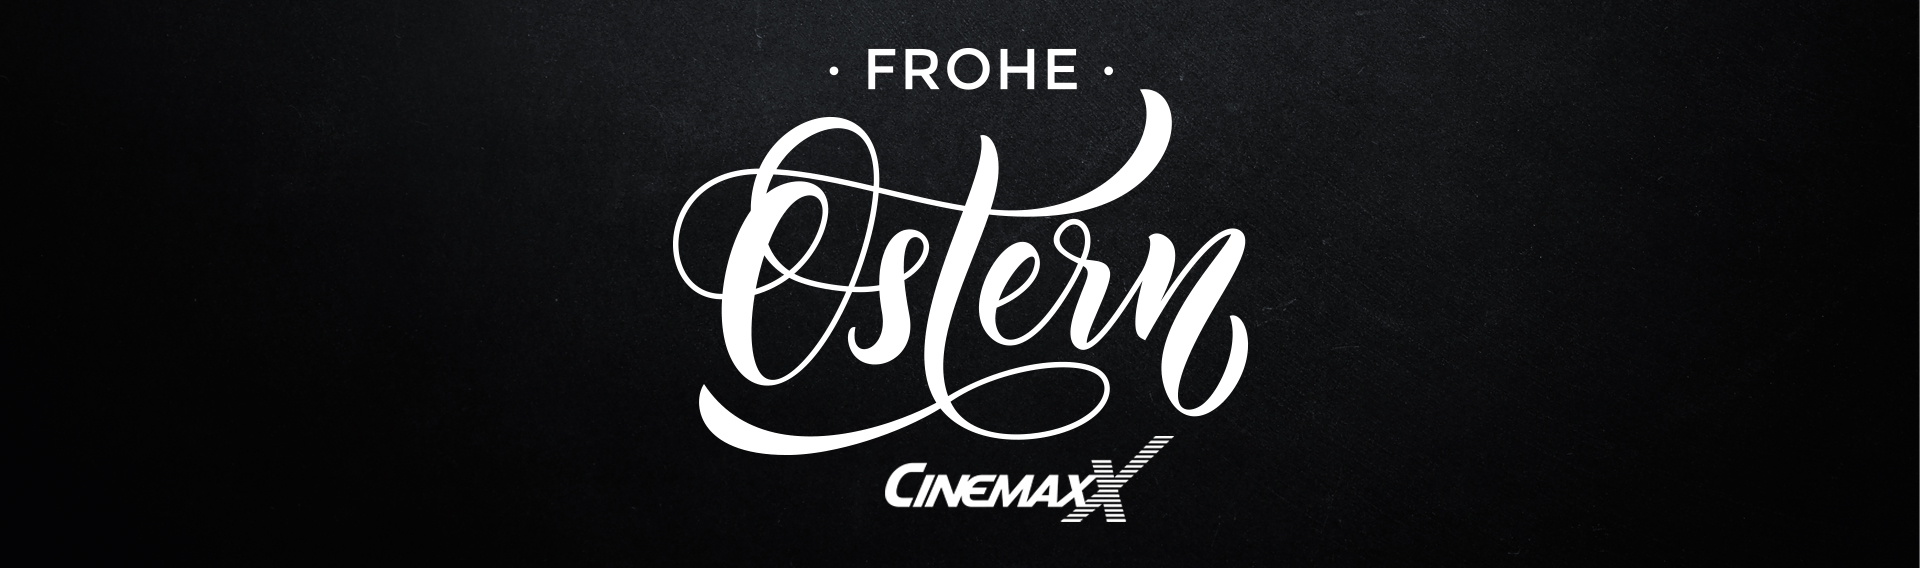 Cinemaxx Coupons Ostern In Cinemaxx